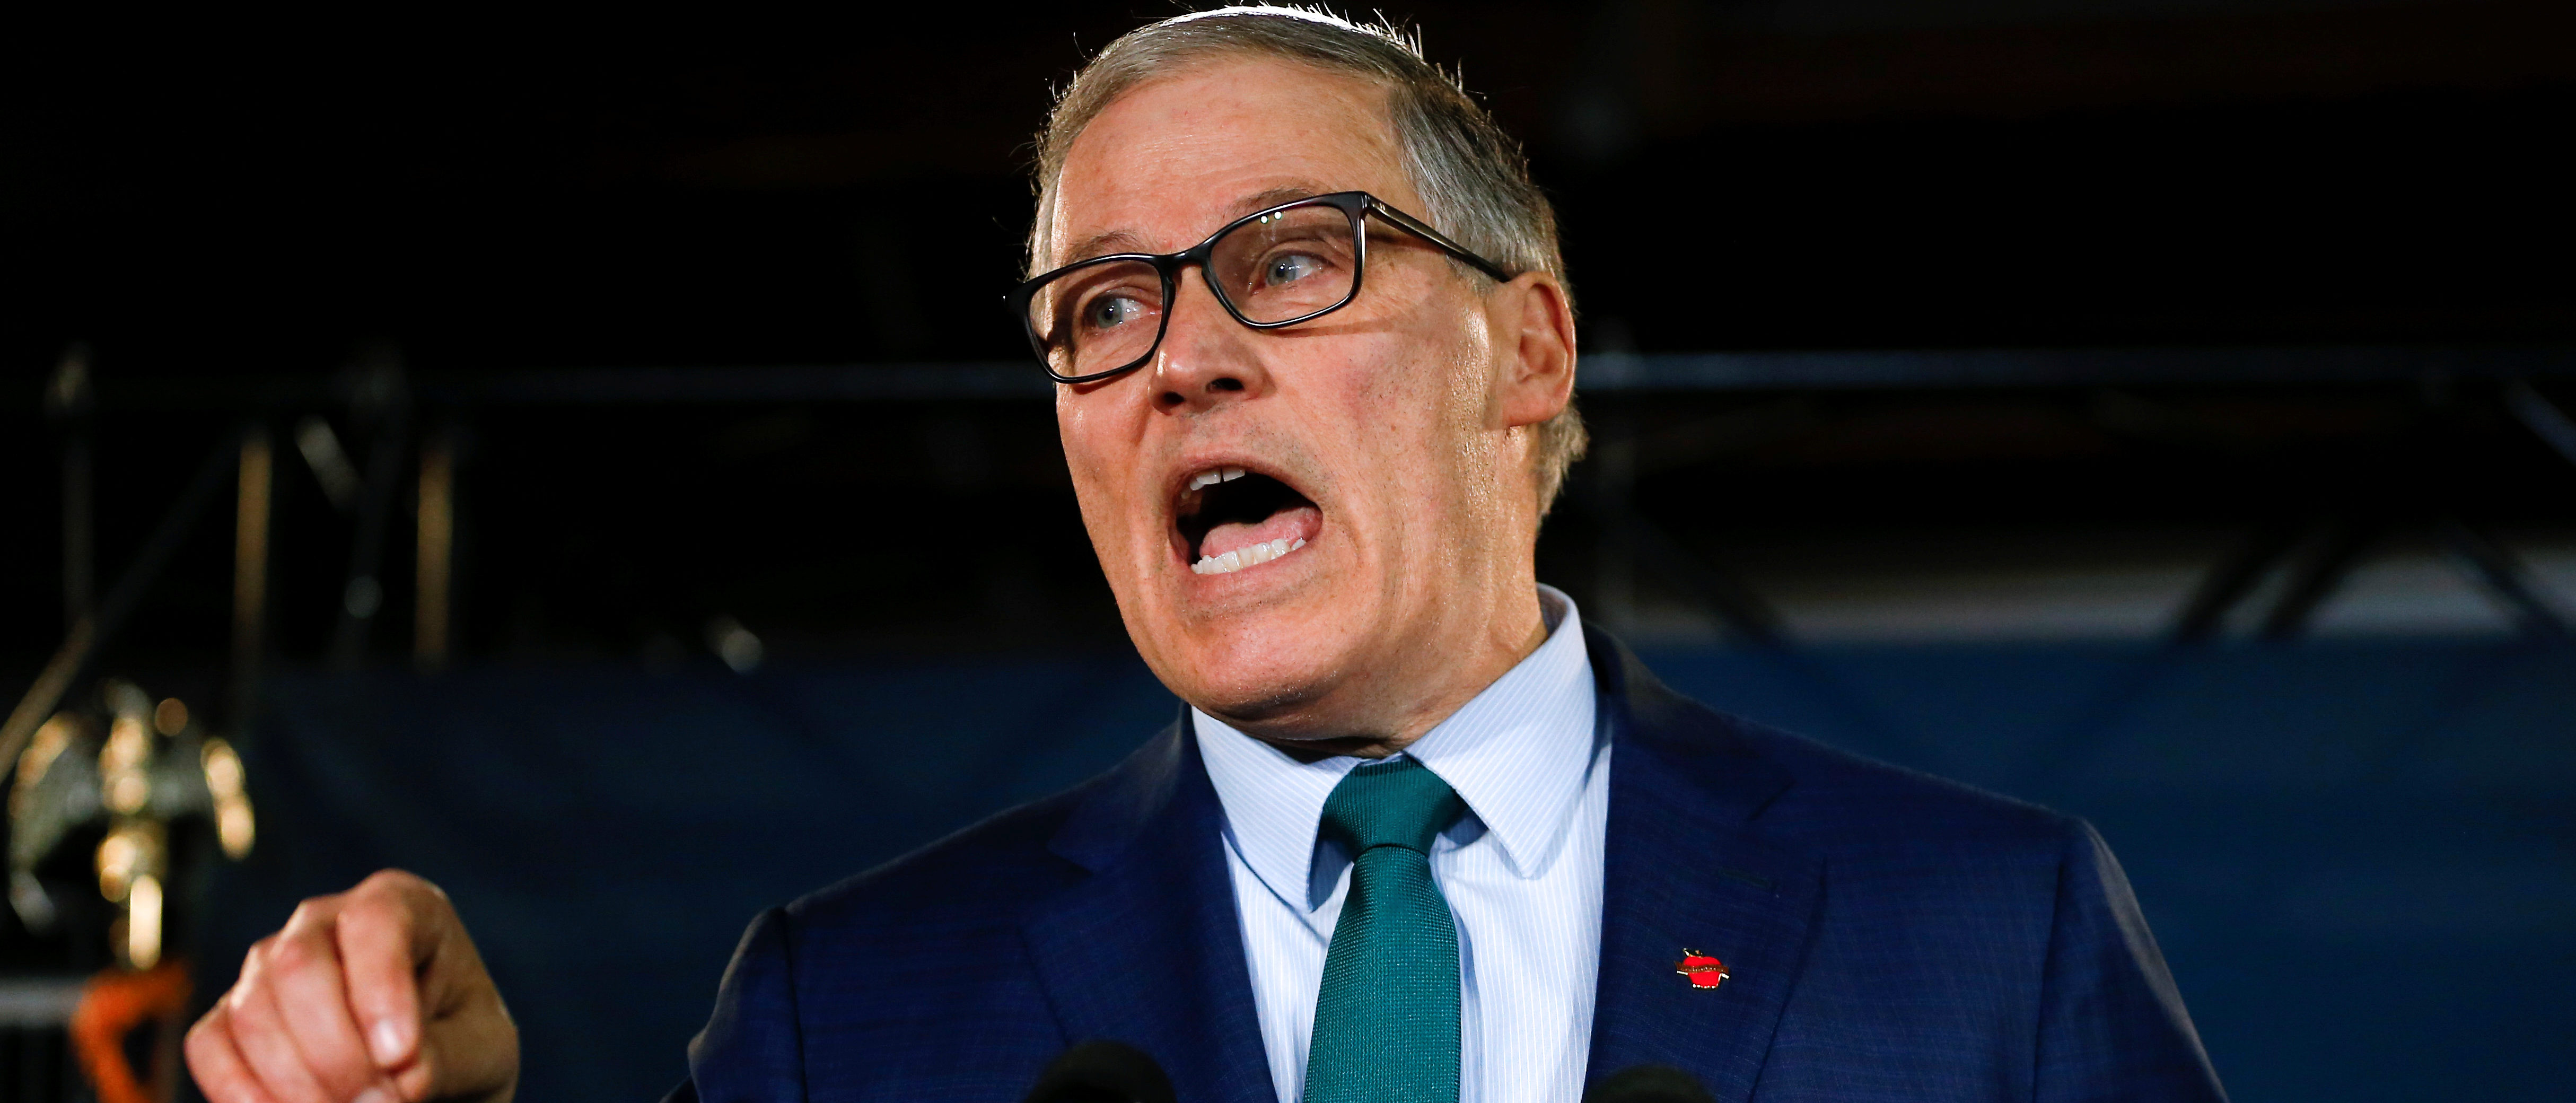 Washington state Governor Jay Inslee speaks during a news conference to announce his decision to seek the Democratic Party's nomination for president in 2020 at A&R Solar in Seattle, Washington, U.S., March 1, 2019. REUTERS/Lindsey Wasson.